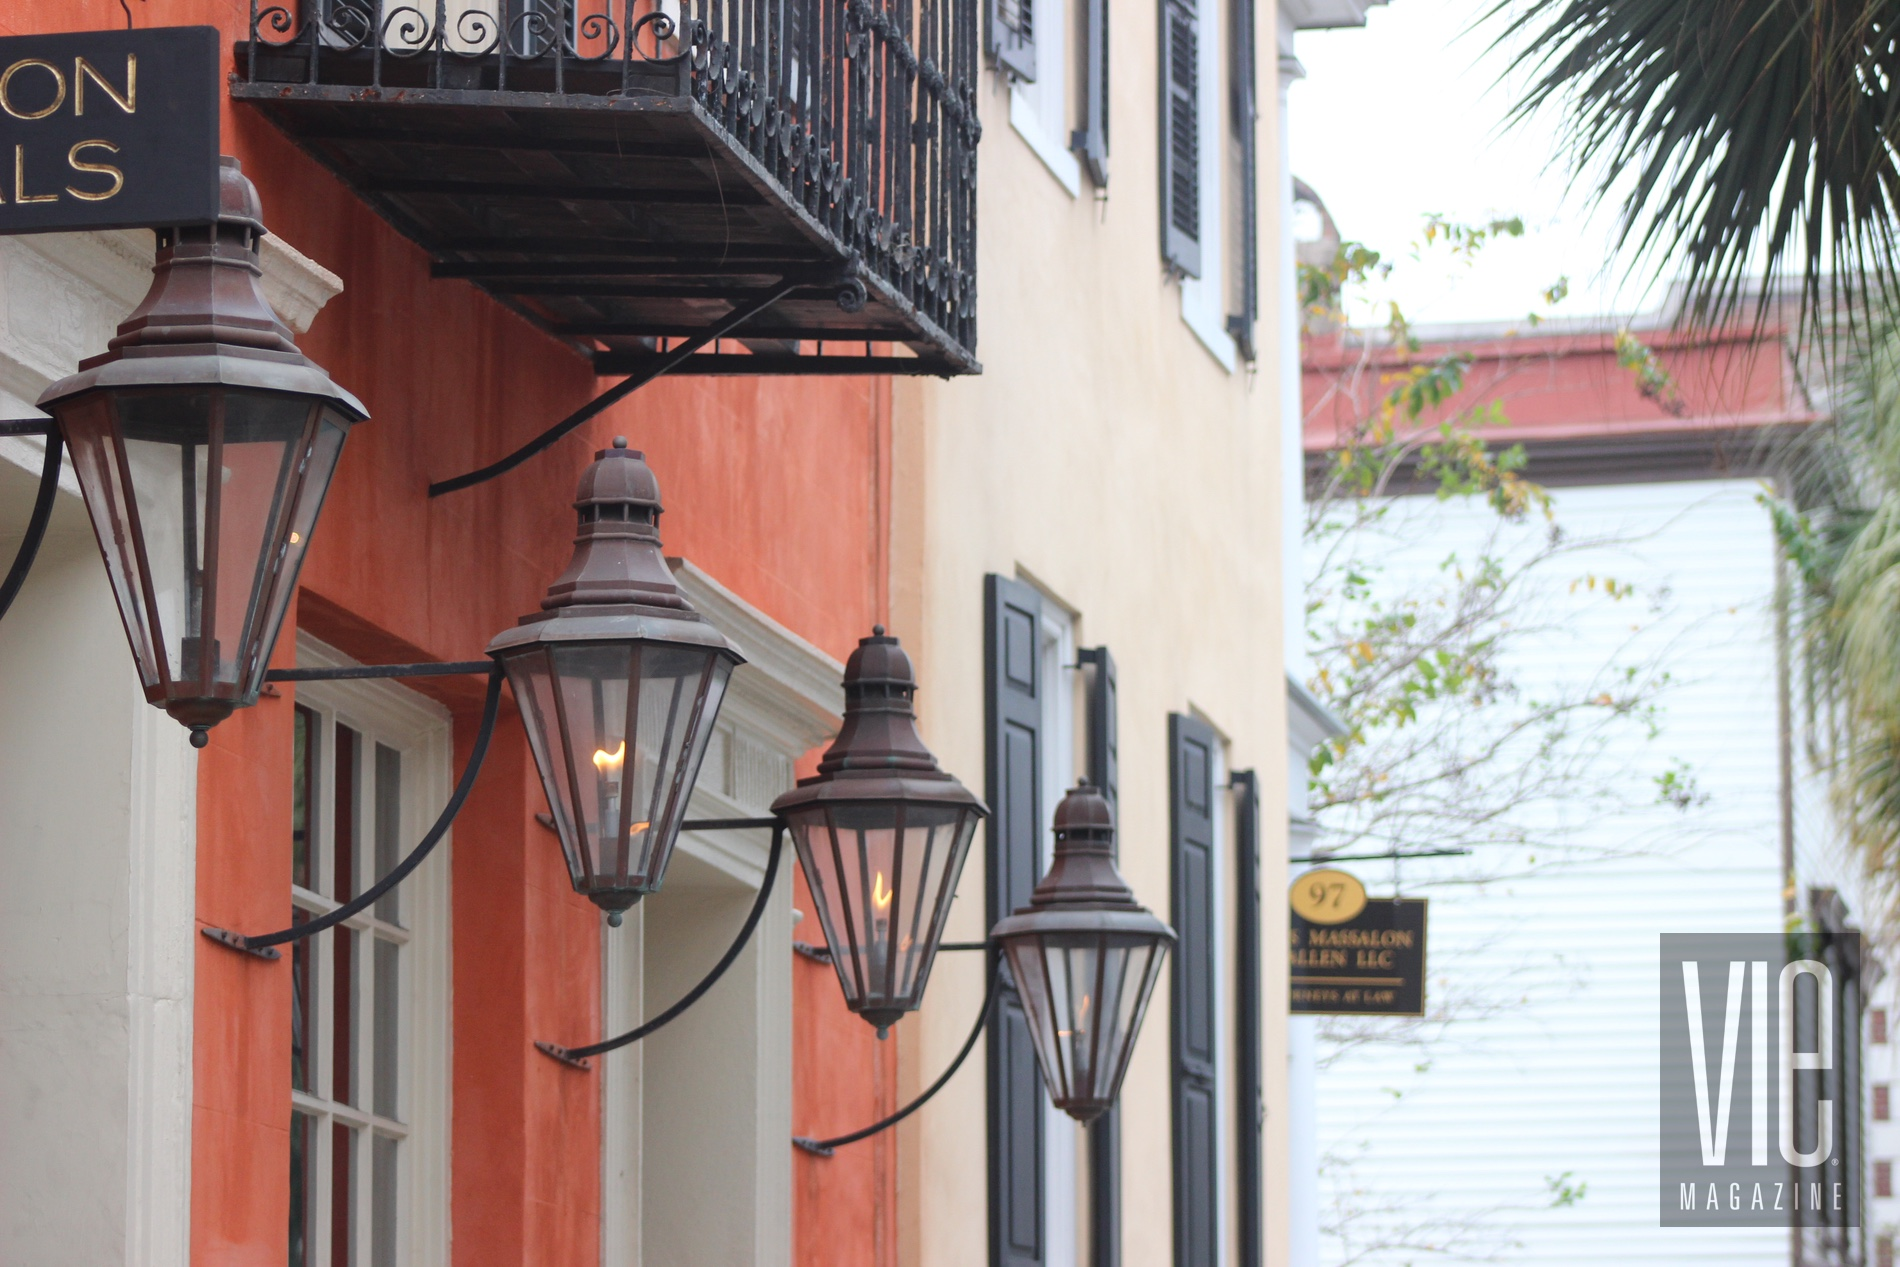 Charleston SC gas lanterns King Street VIE magazine fall 2018